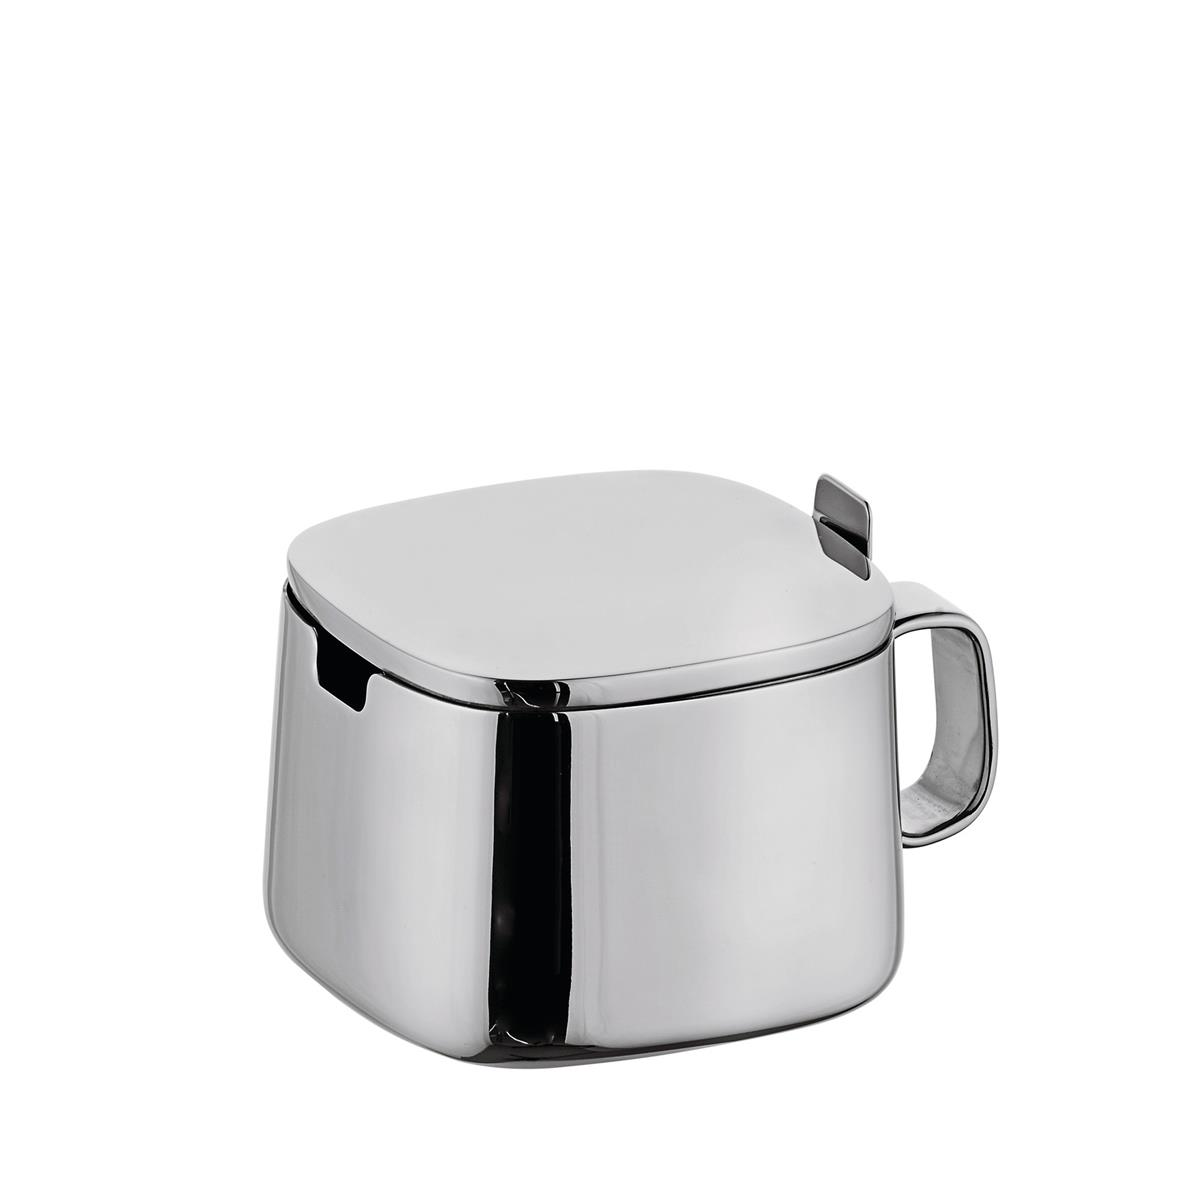 Alessi-Sugar bowl in 18/10 stainless steel mirror polished